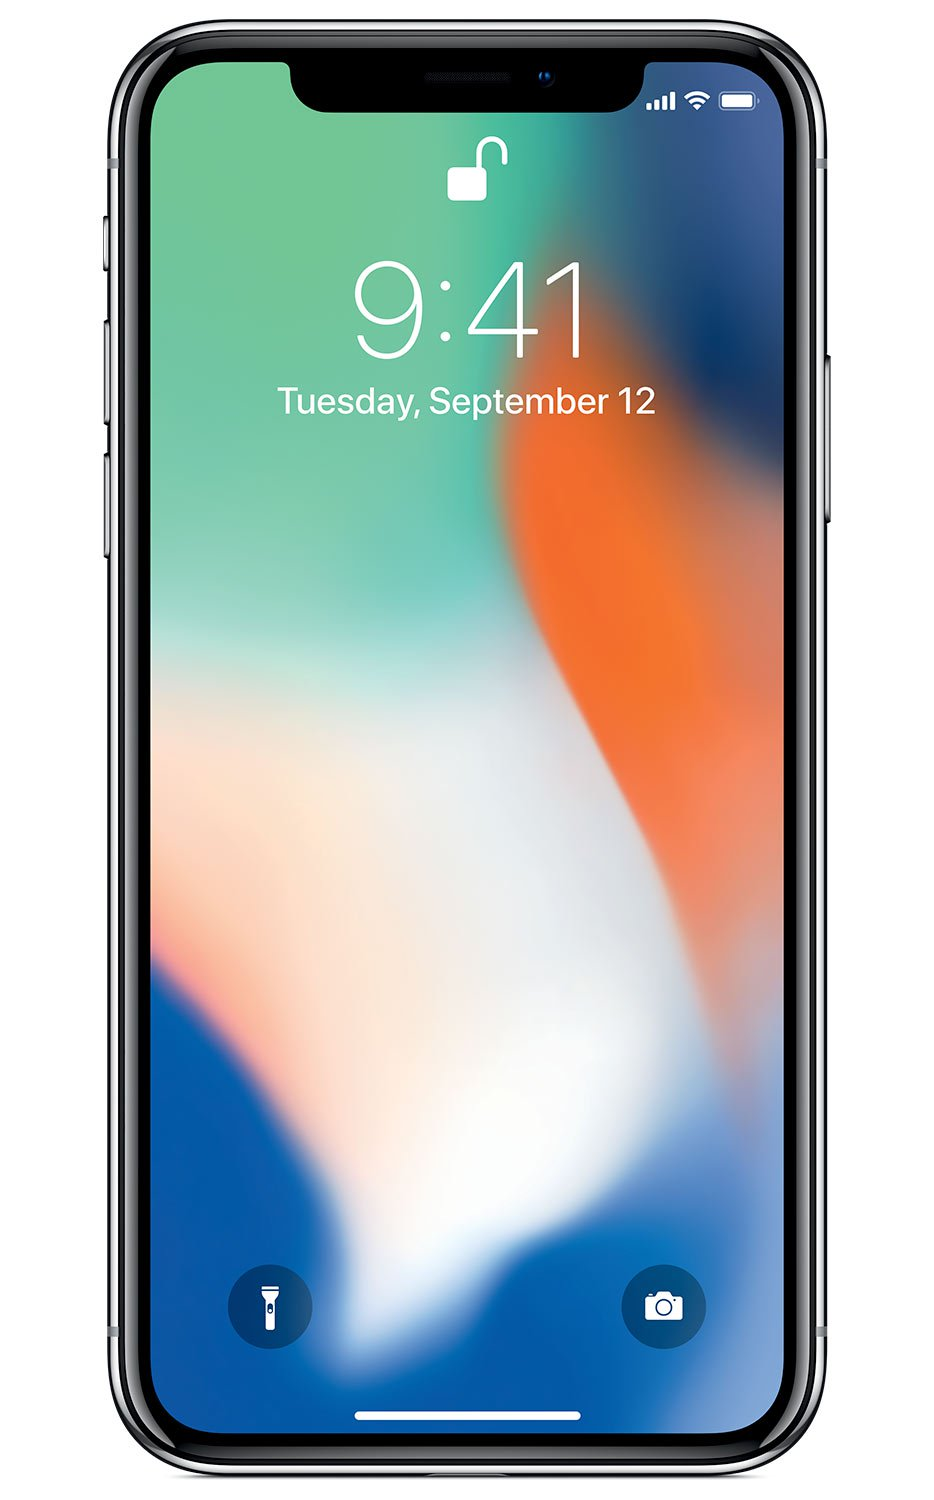 apple-iphonex-silver-1-3x.jpg